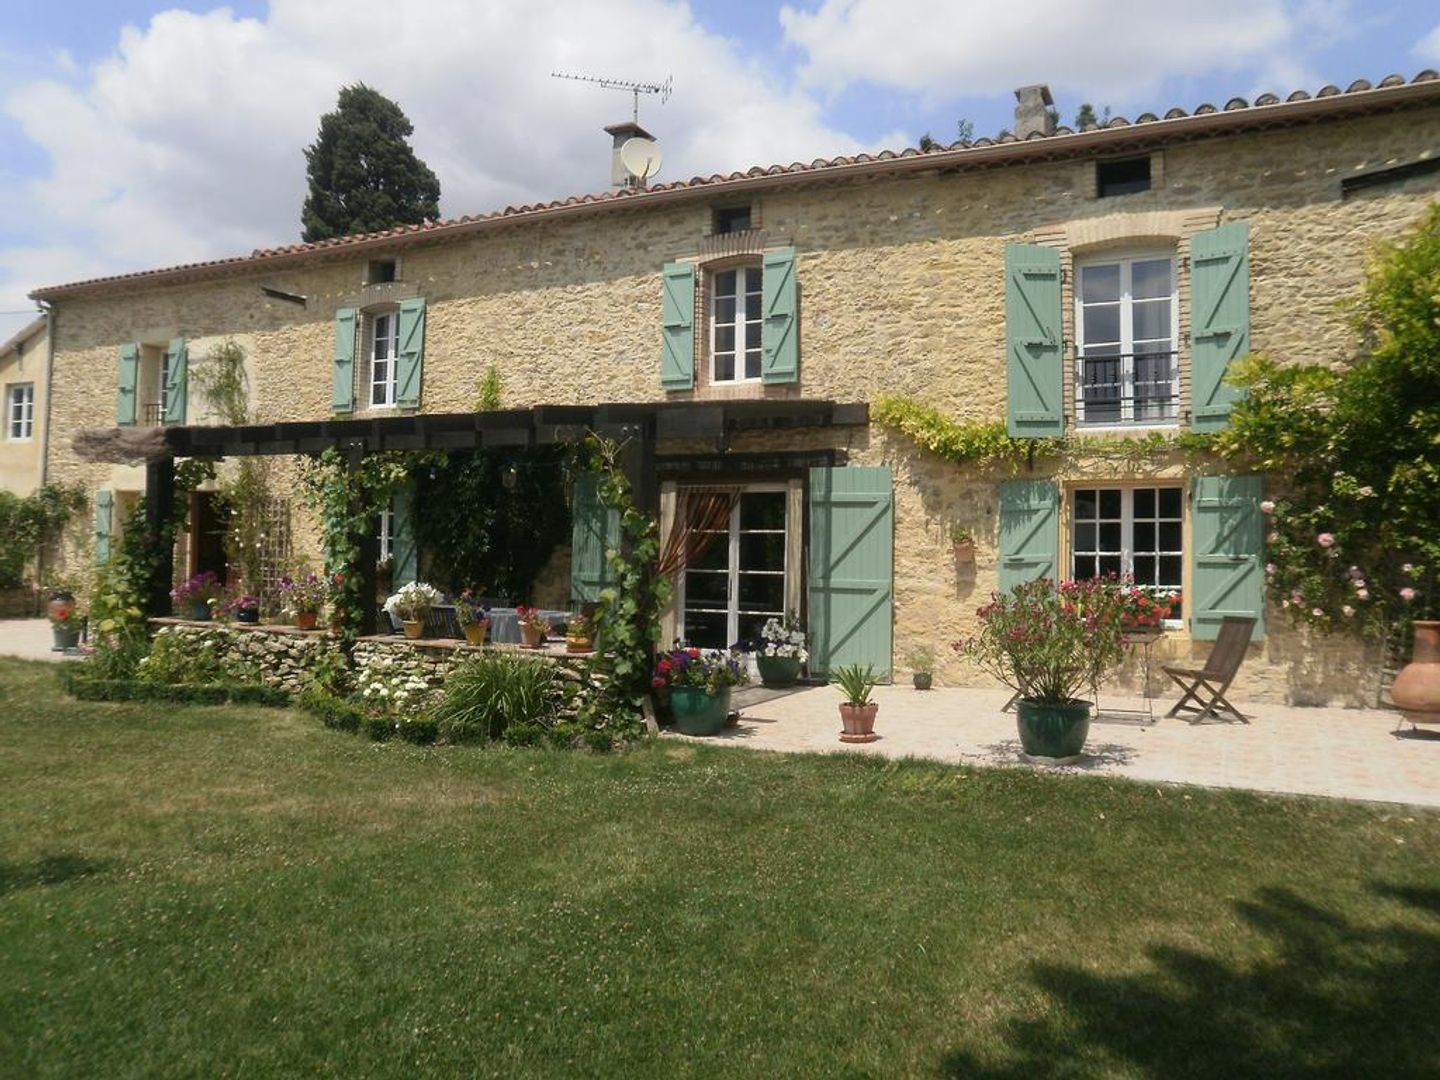 A large brick building with grass in front of a house at Domaine de Laspeyrisses.